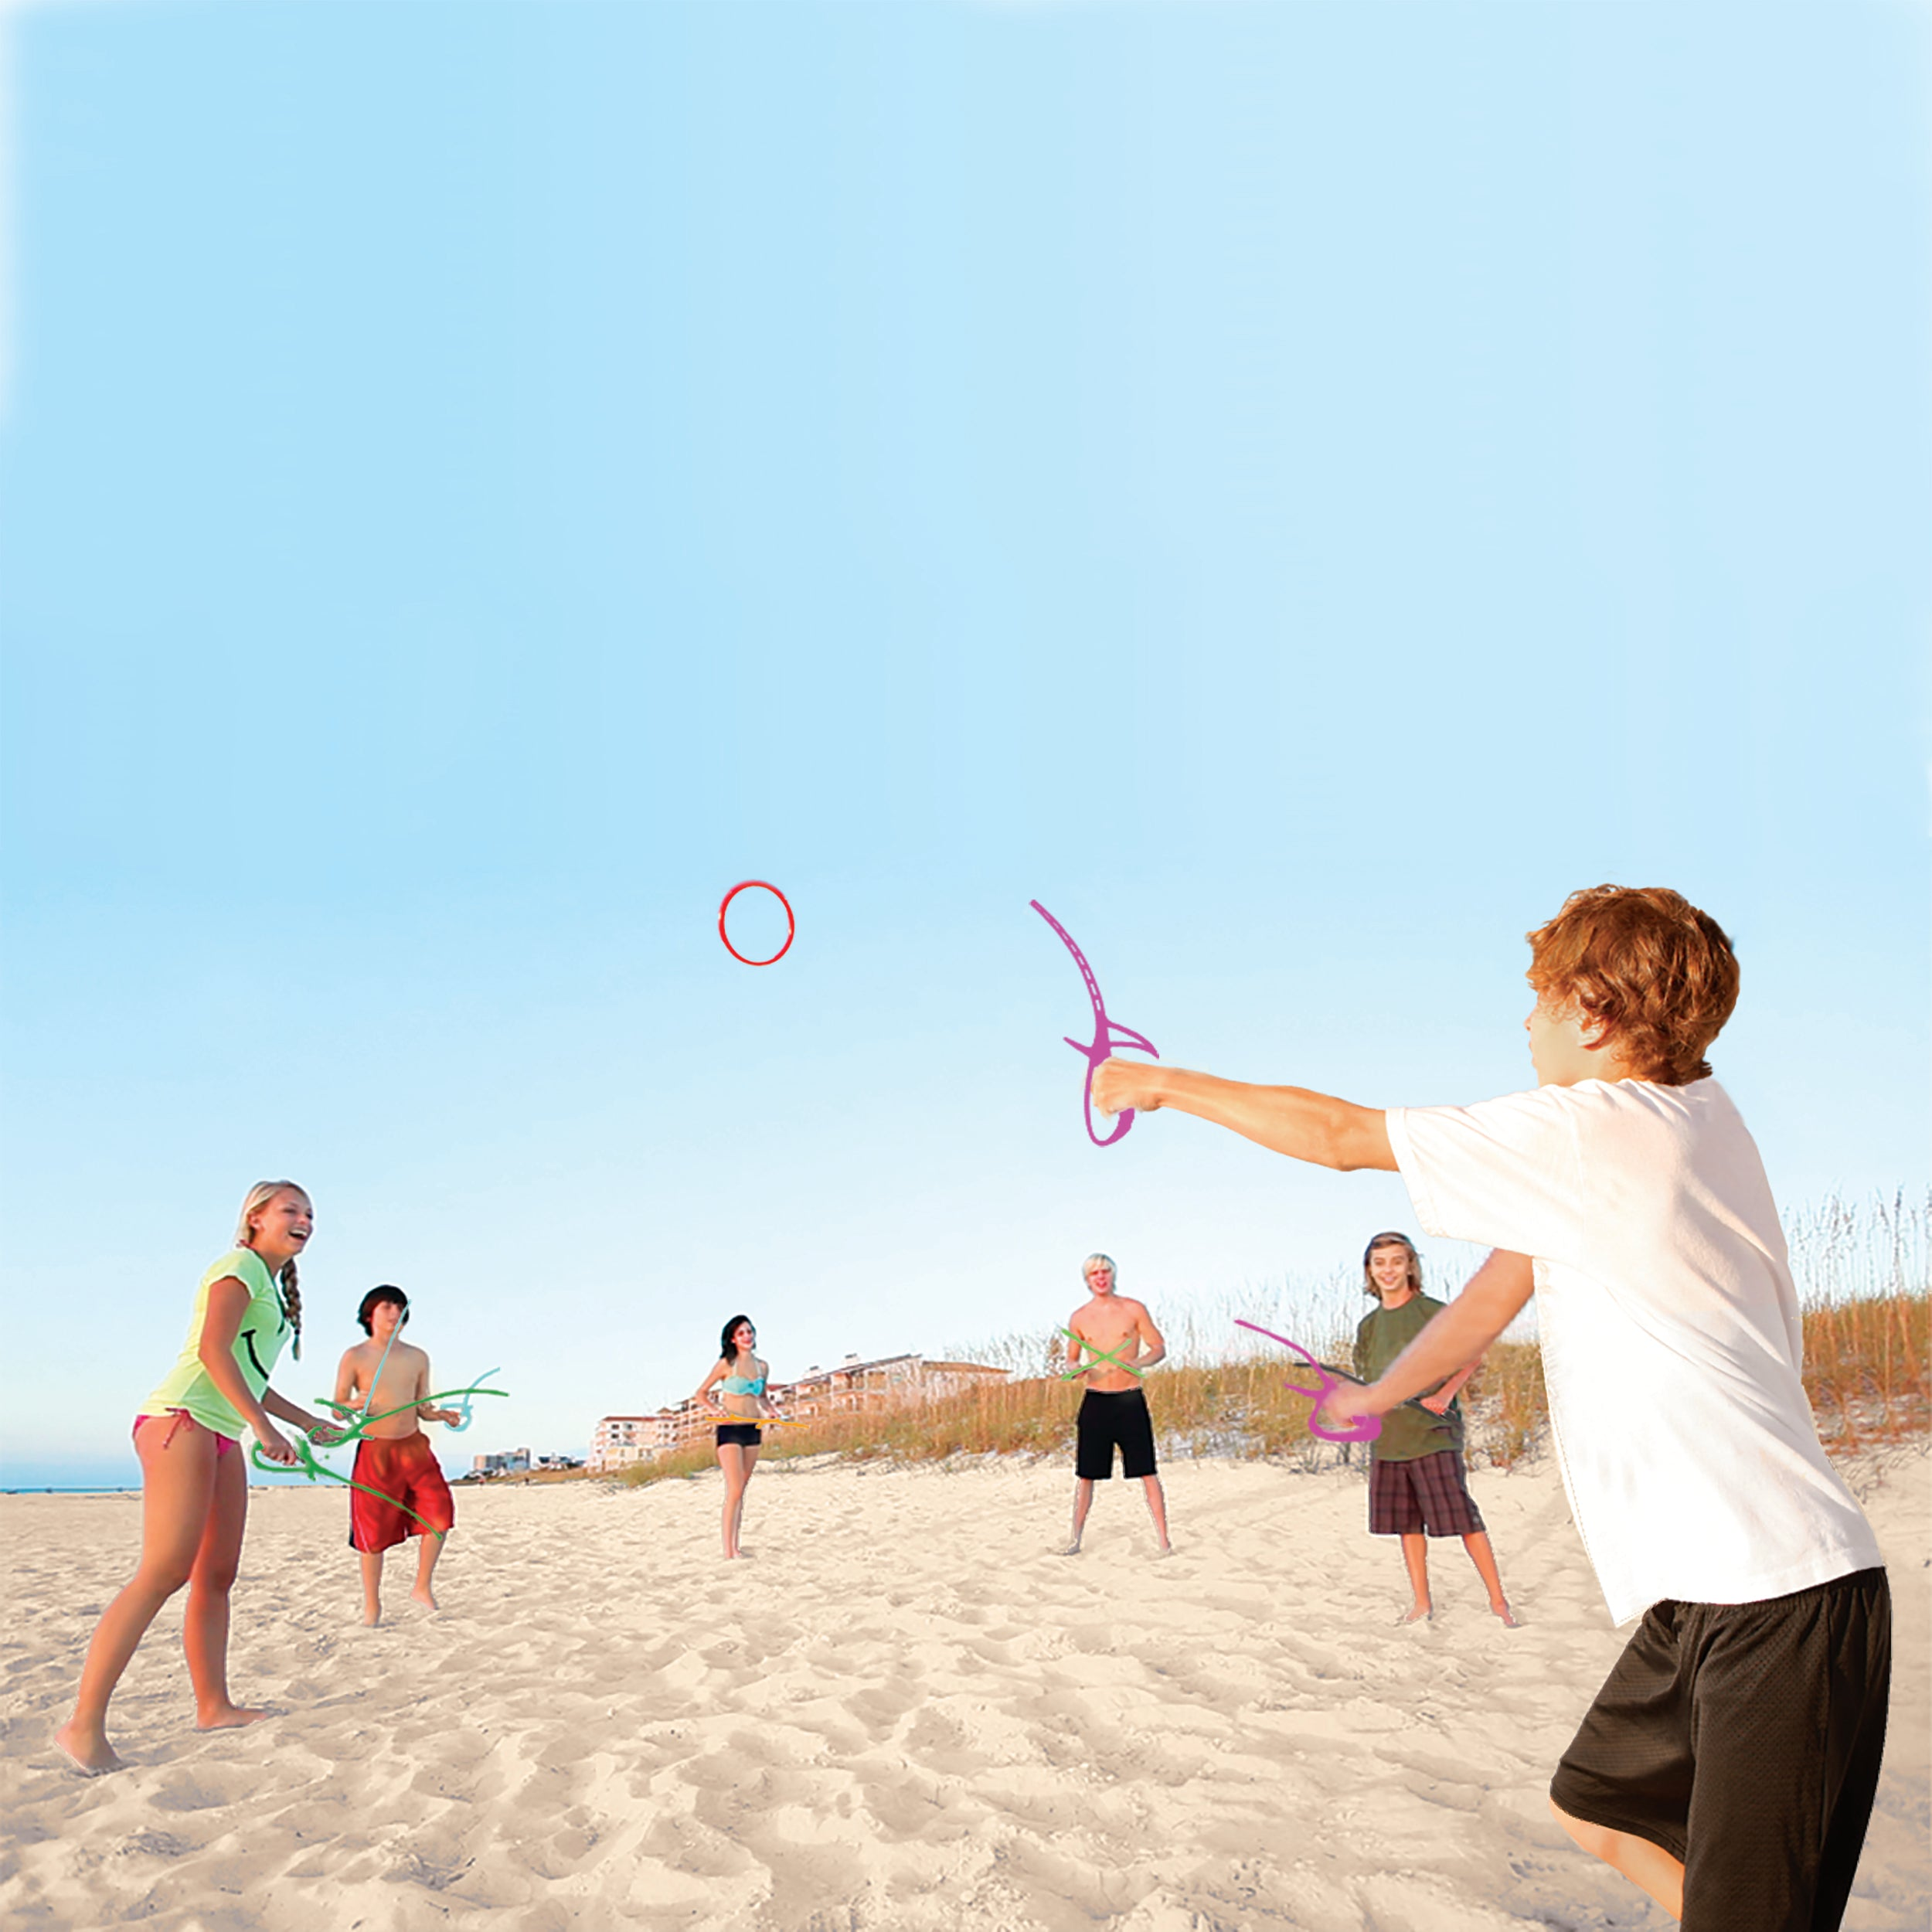 RingStix at the beach is super fun with groups of friends